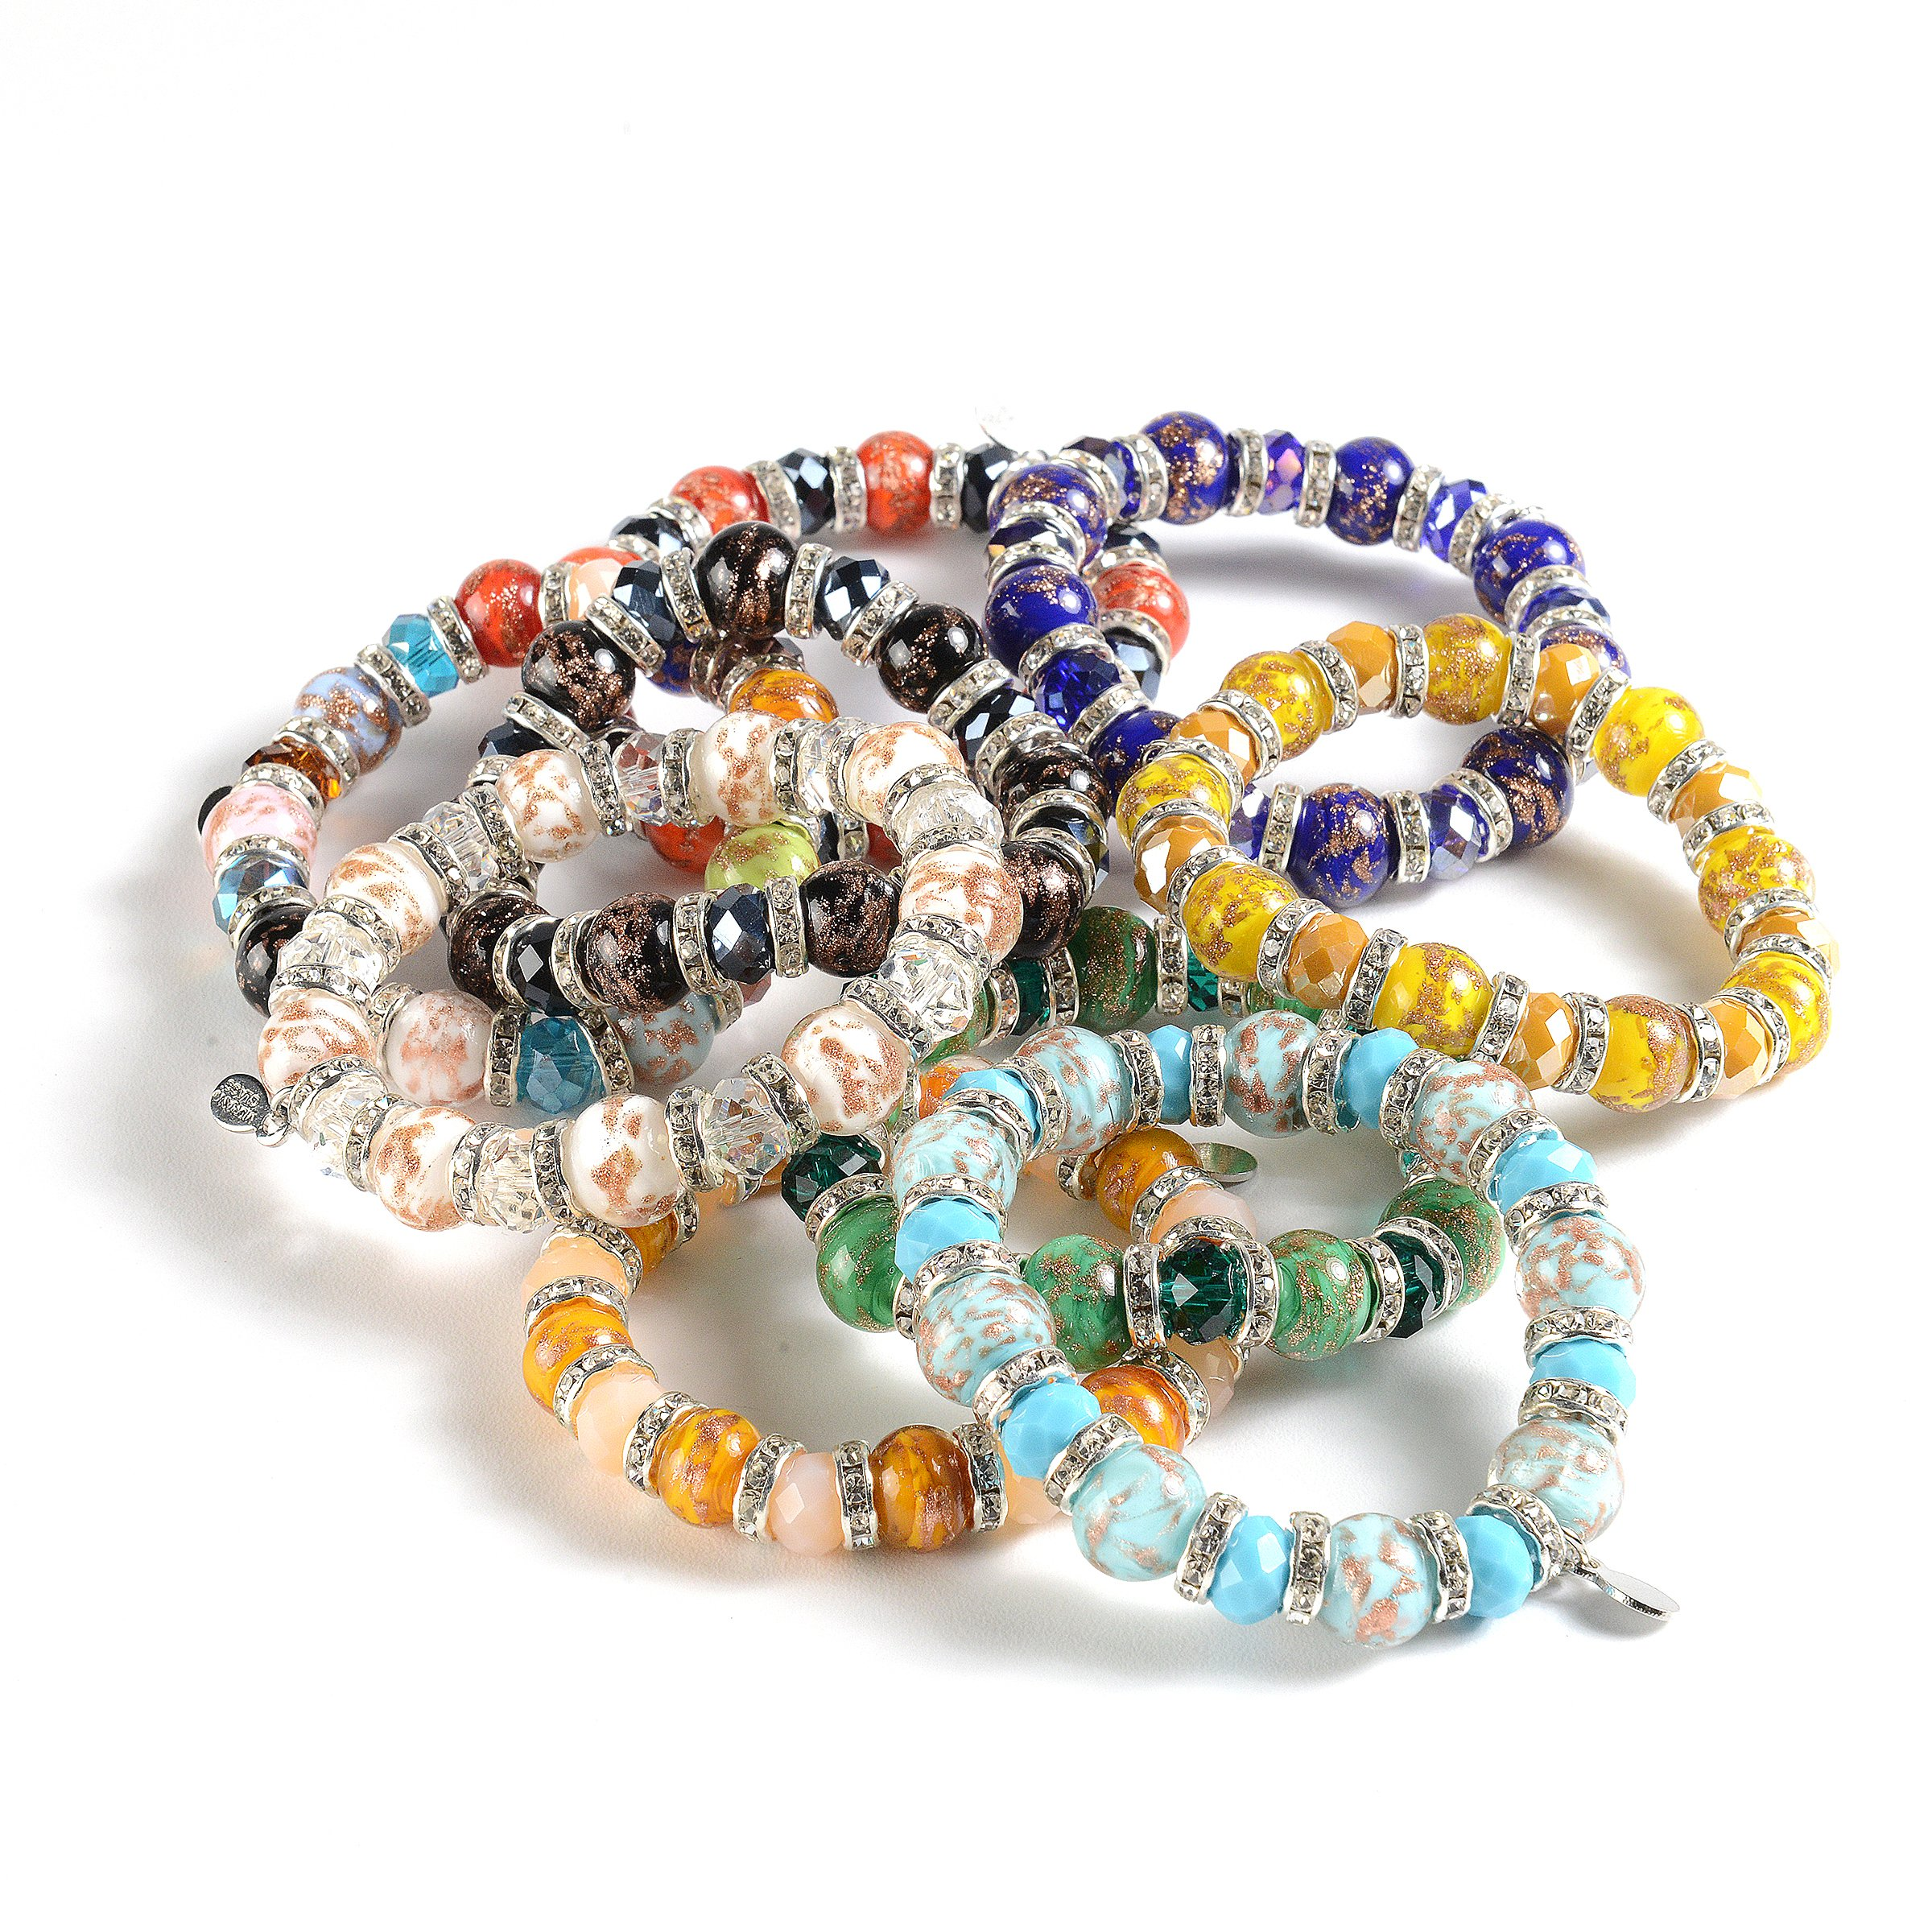 Murano Glass Bracelet, Handmade Vibrant Murano Glass Beads, Elastic Stretch Bracelet, Each Murano Charm Bead is Unique, Colorful, and Exquisite – Murano Glass Jewelry for Women Necklace, Imported by EMBRACE LA GRANDE VITA (Image #2)